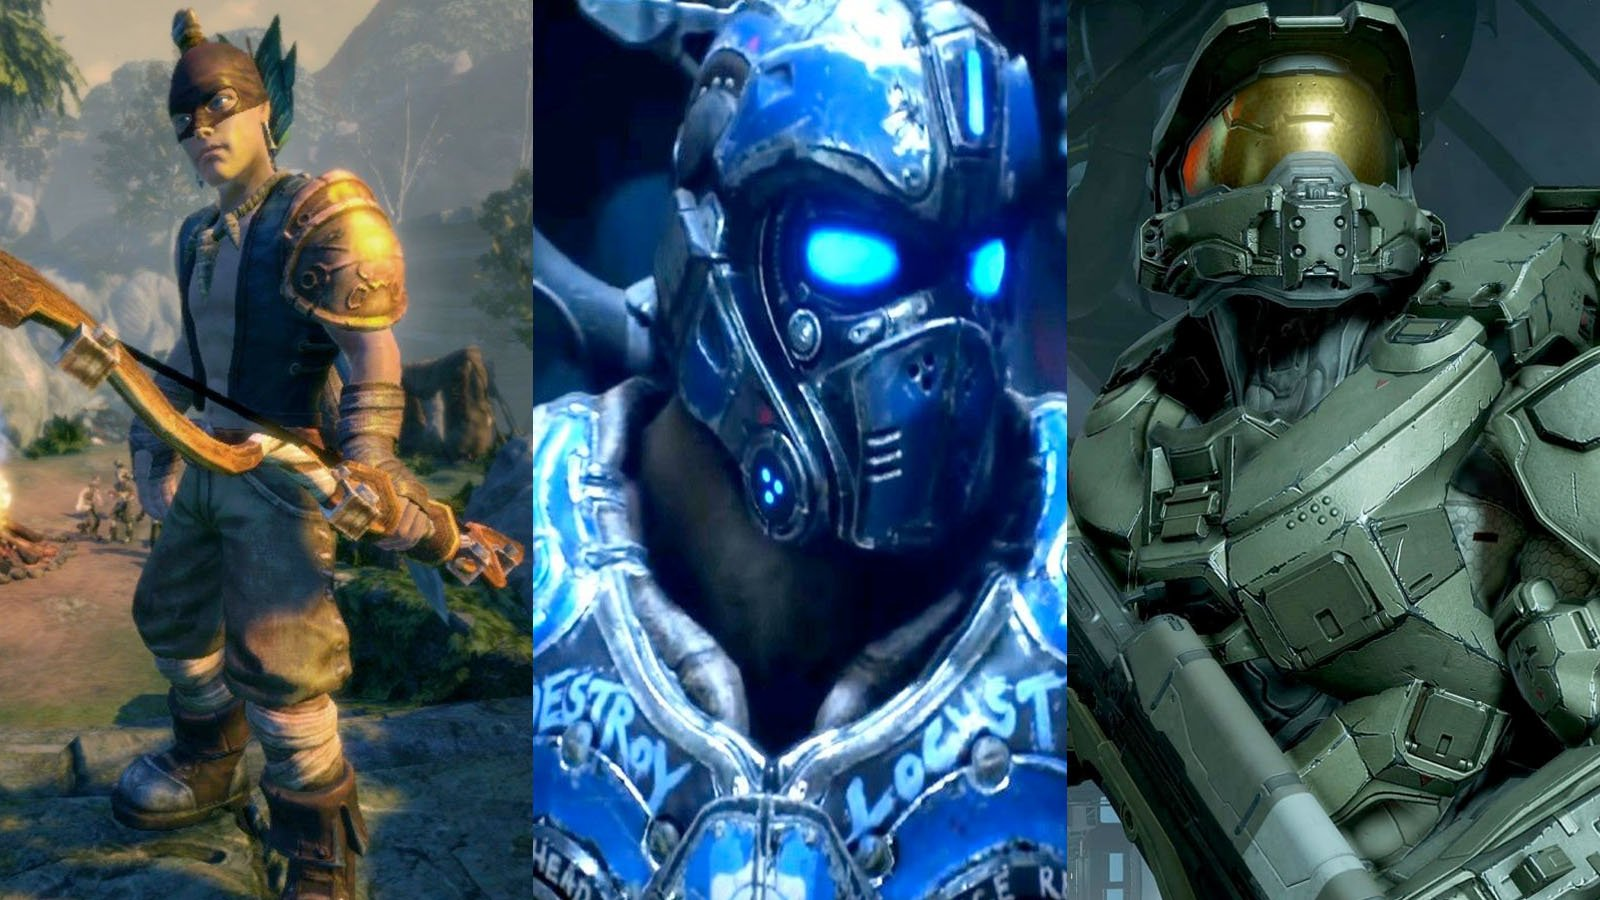 Leak Hints At Fable Reboot, Halo 5 on PC, and Gears 6